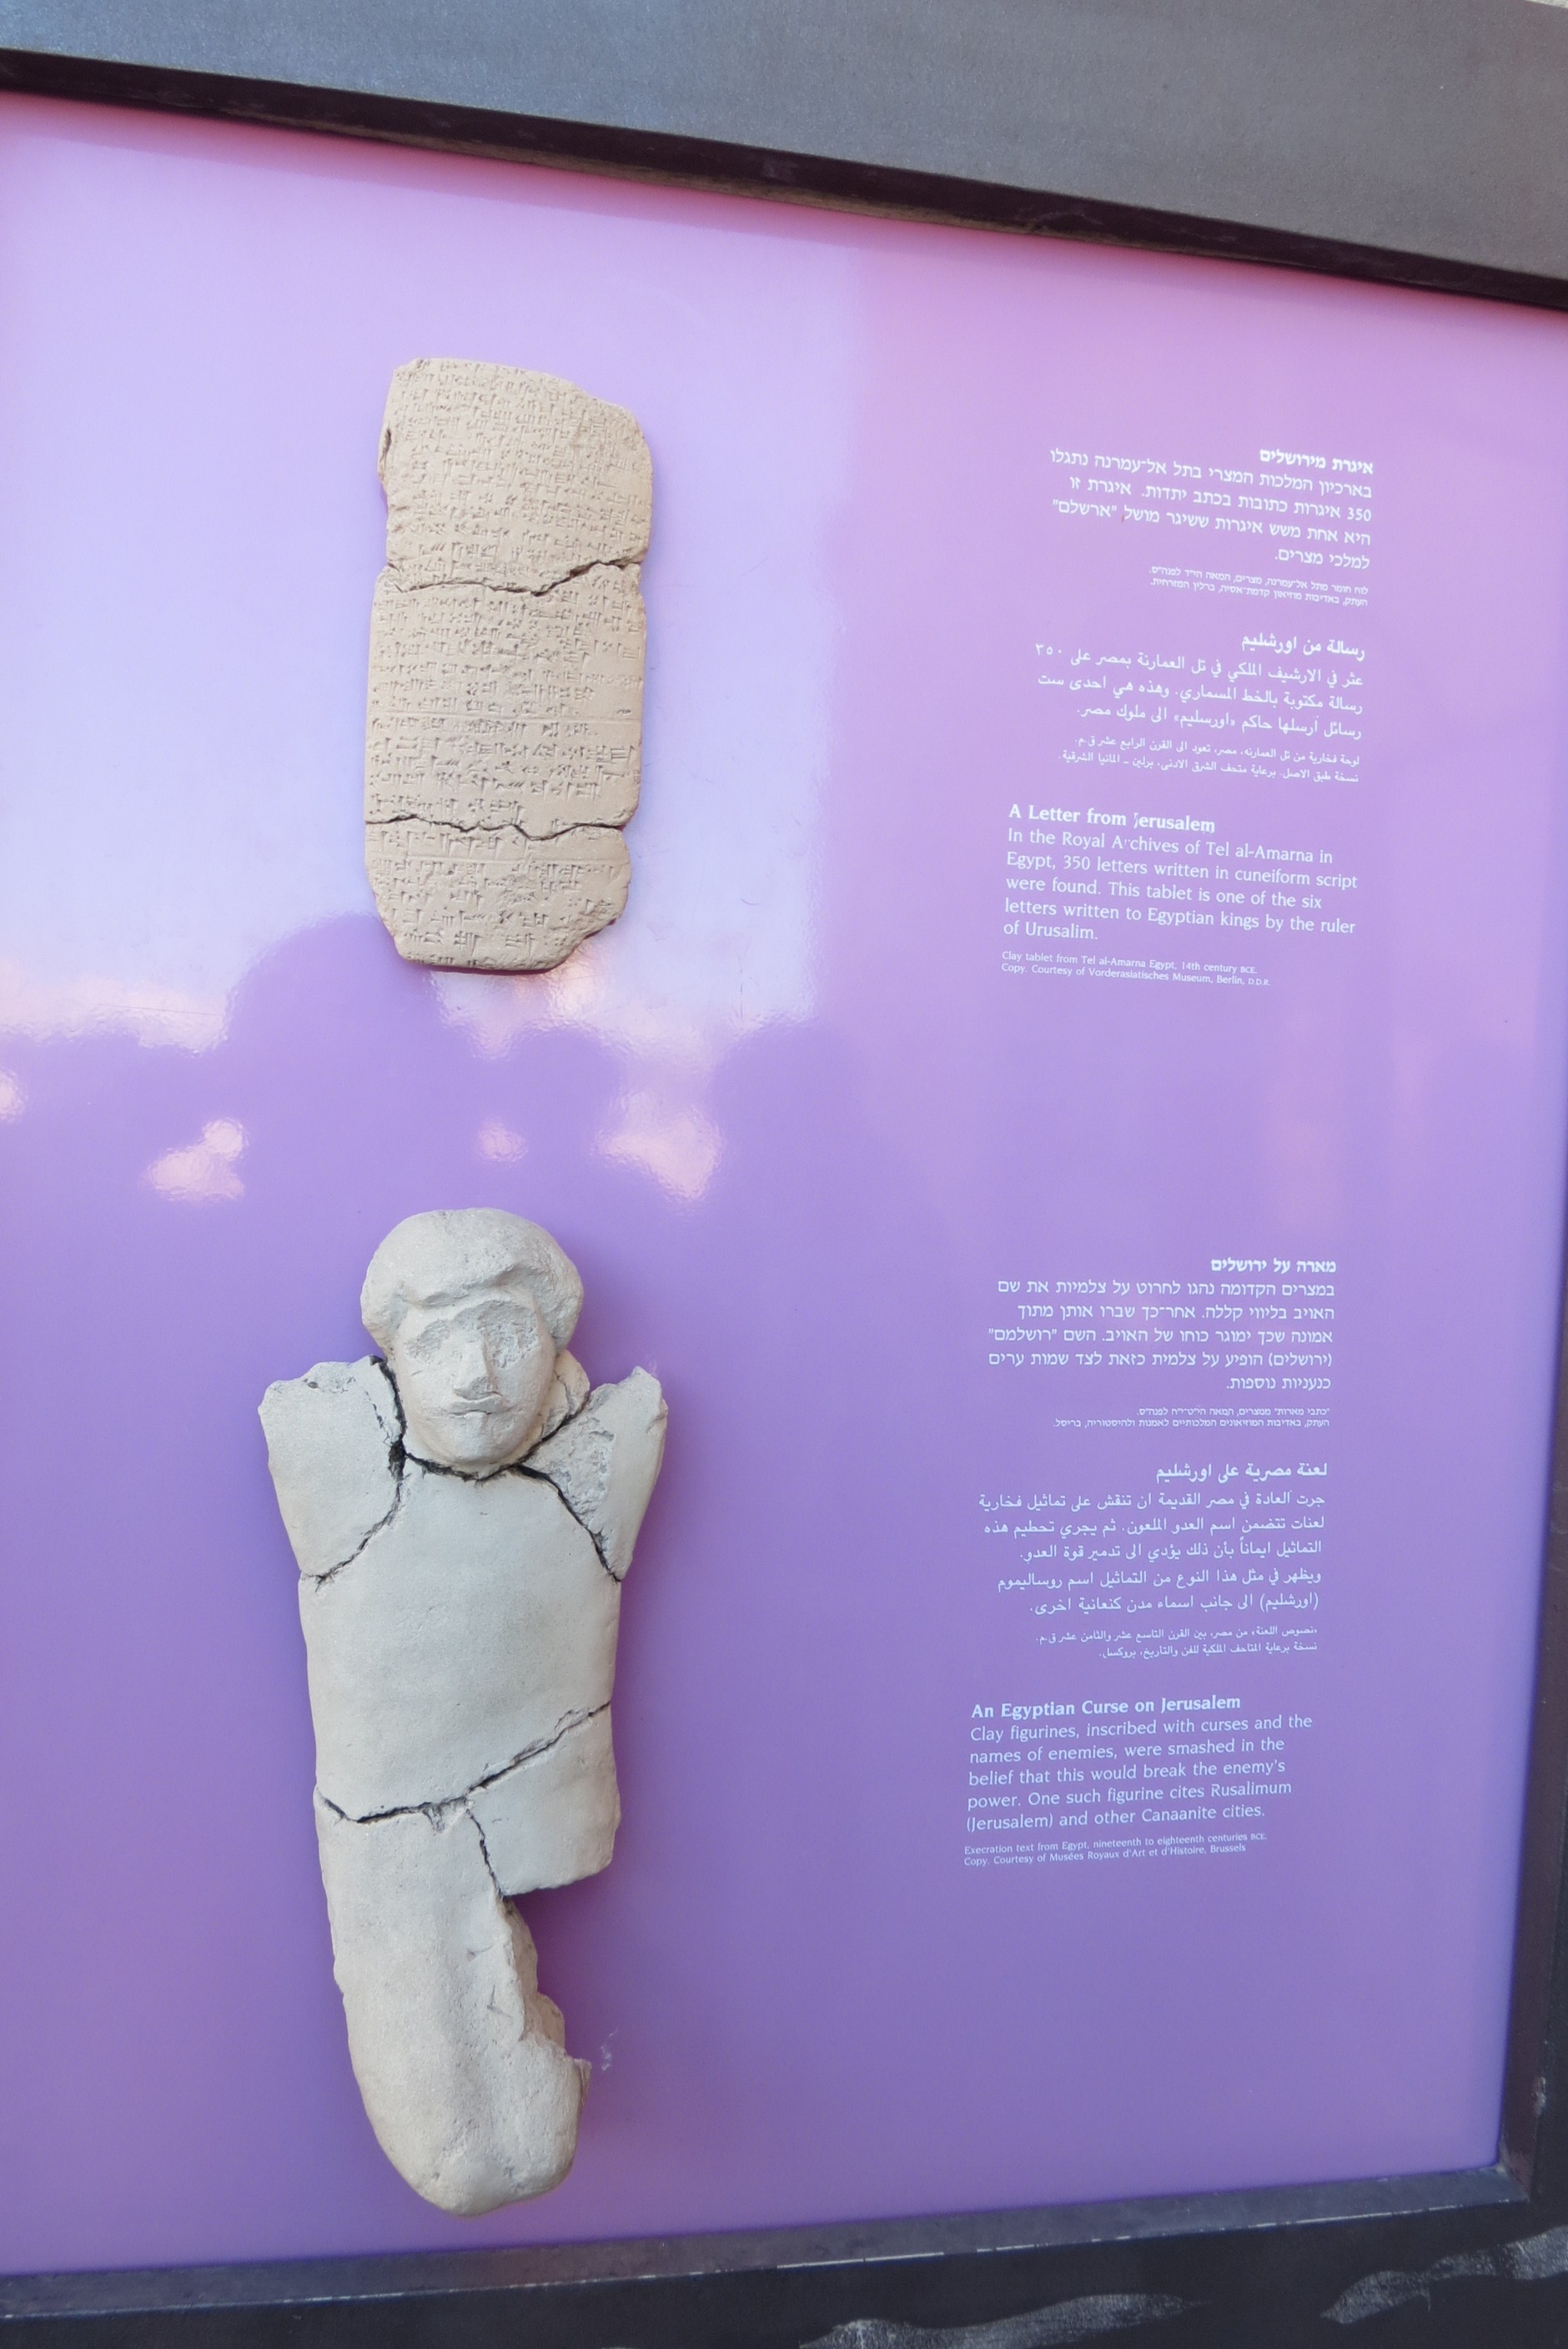 Egyptian Curse on Jerusalem - Permanent Exhibition at Tower of David